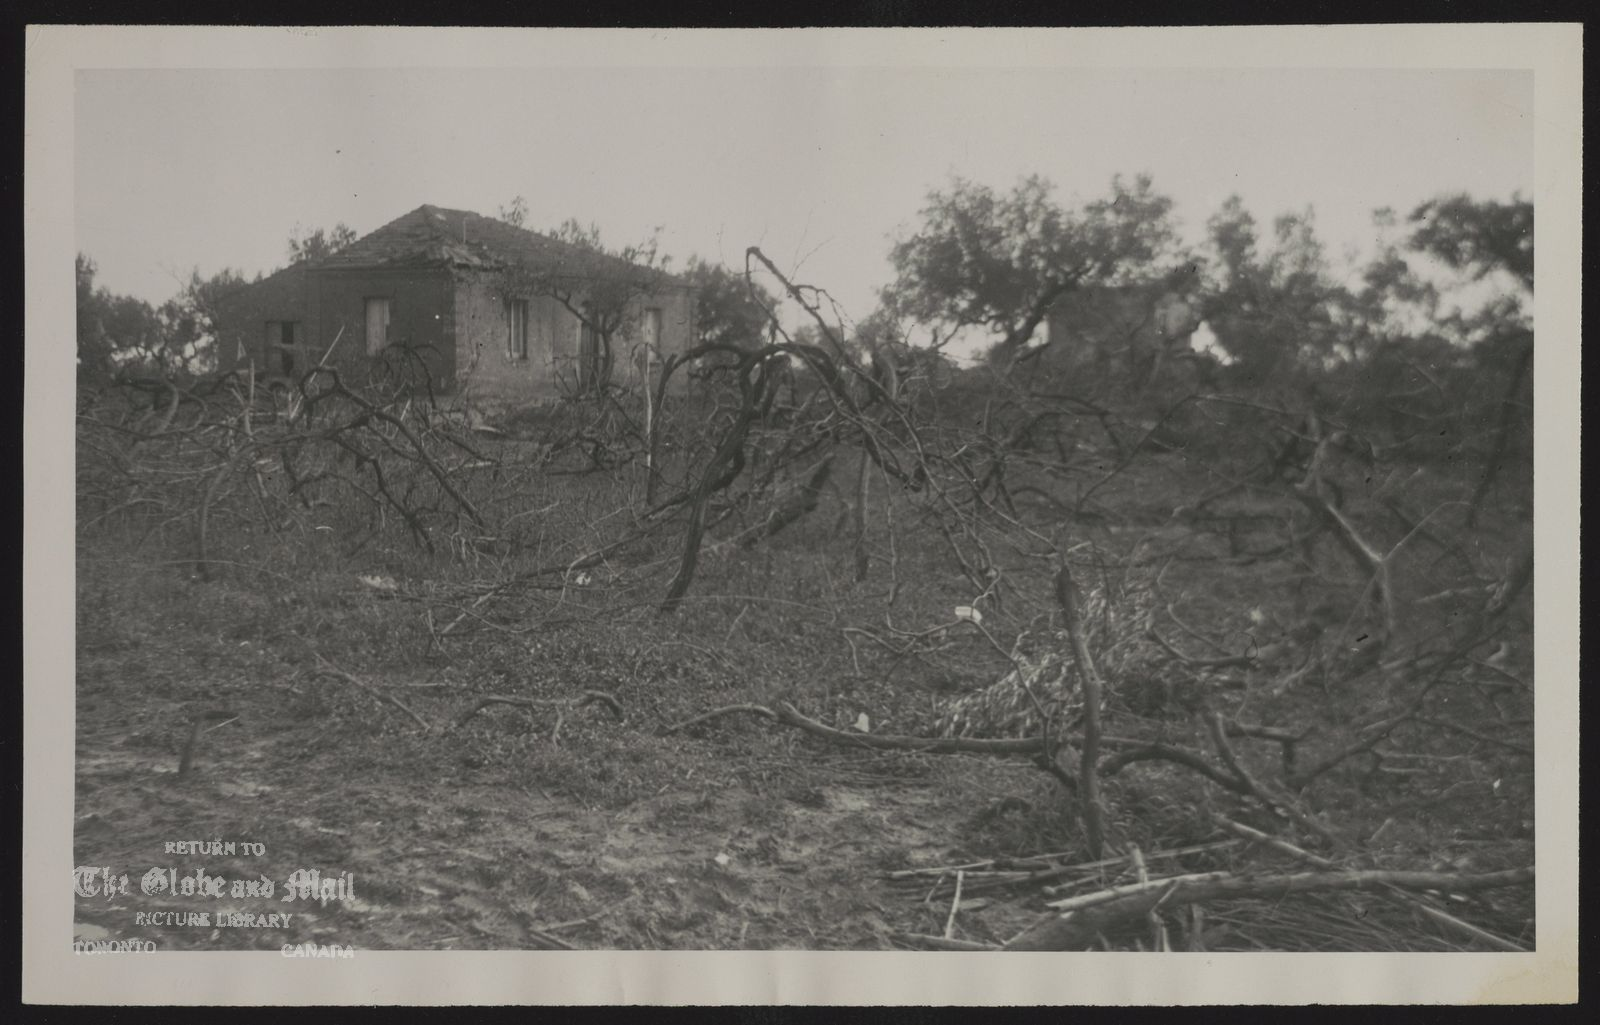 WORLD WAR II Canadian Forces This photo shows the tangled vineyards which concealed the one-storey farmhouses that shielded the enemy troops and permitted small protection on the advancing Canucks. Heavy casualties were imposed upon Canadian soldiers at this very spot near Ortona. Photo by V.G. Lewington, 1943